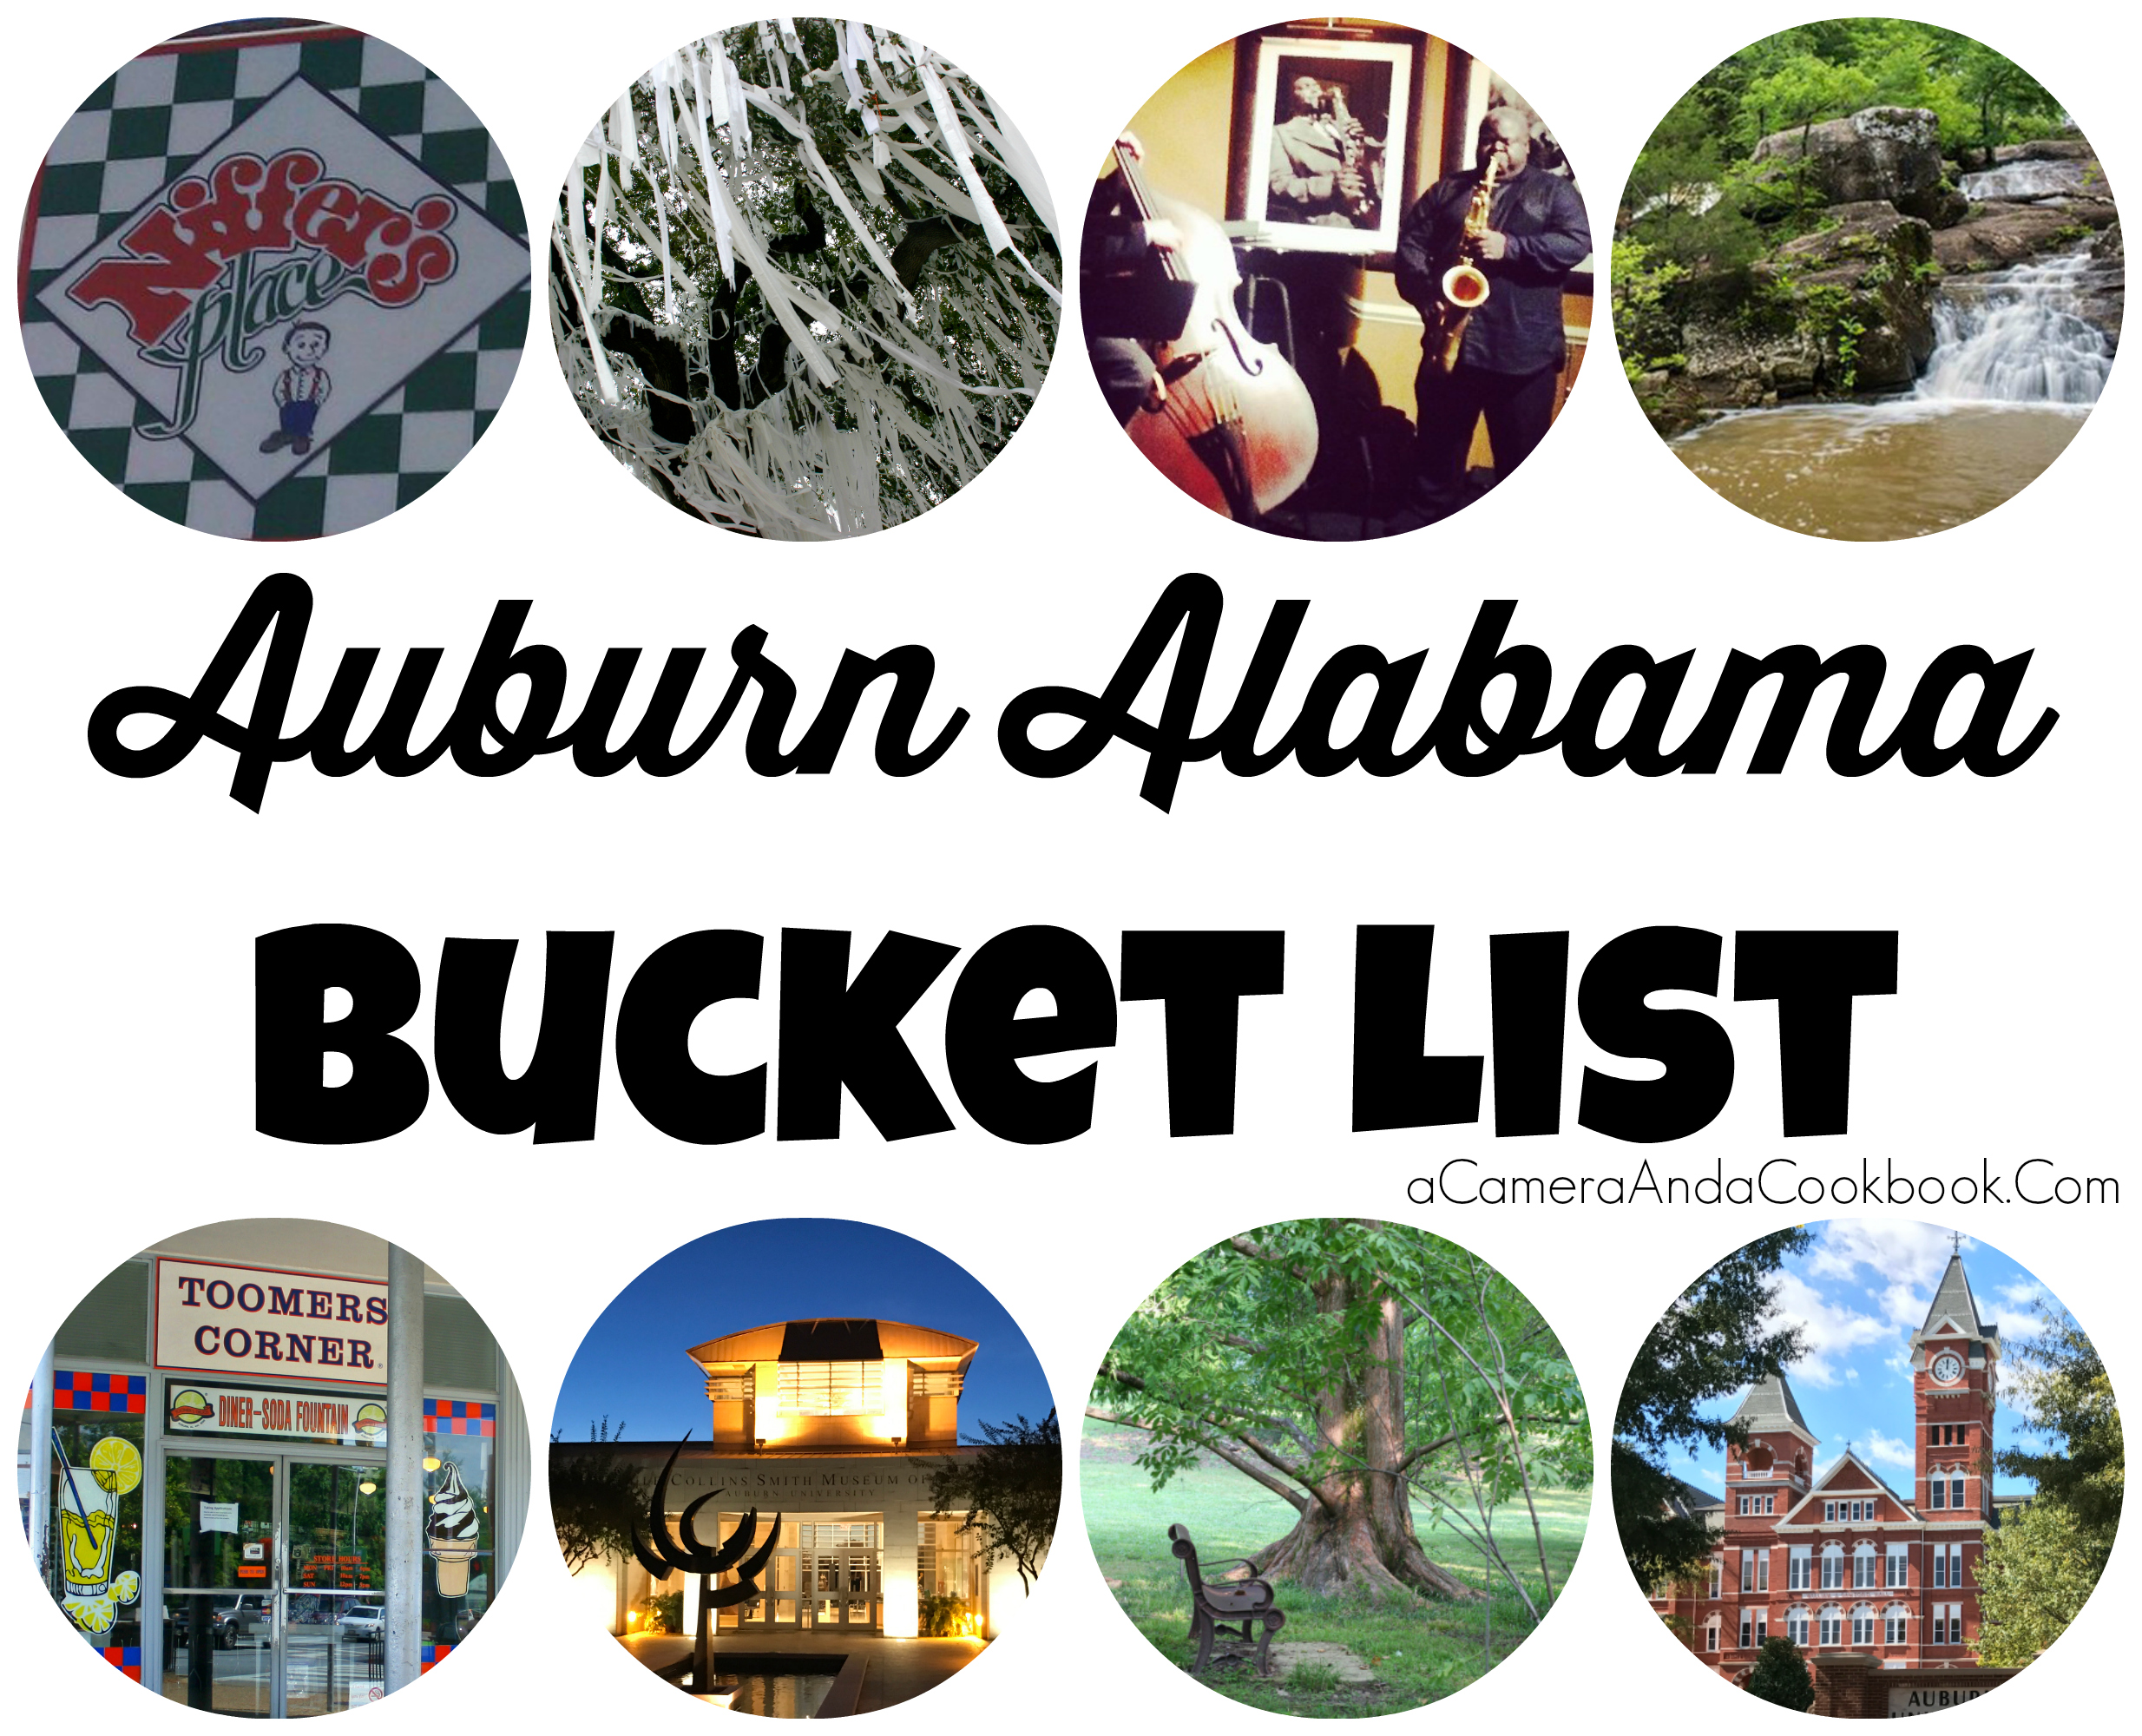 Auburn Alabama Bucket List - Here's a list of THE things to do while visiting this great college town!